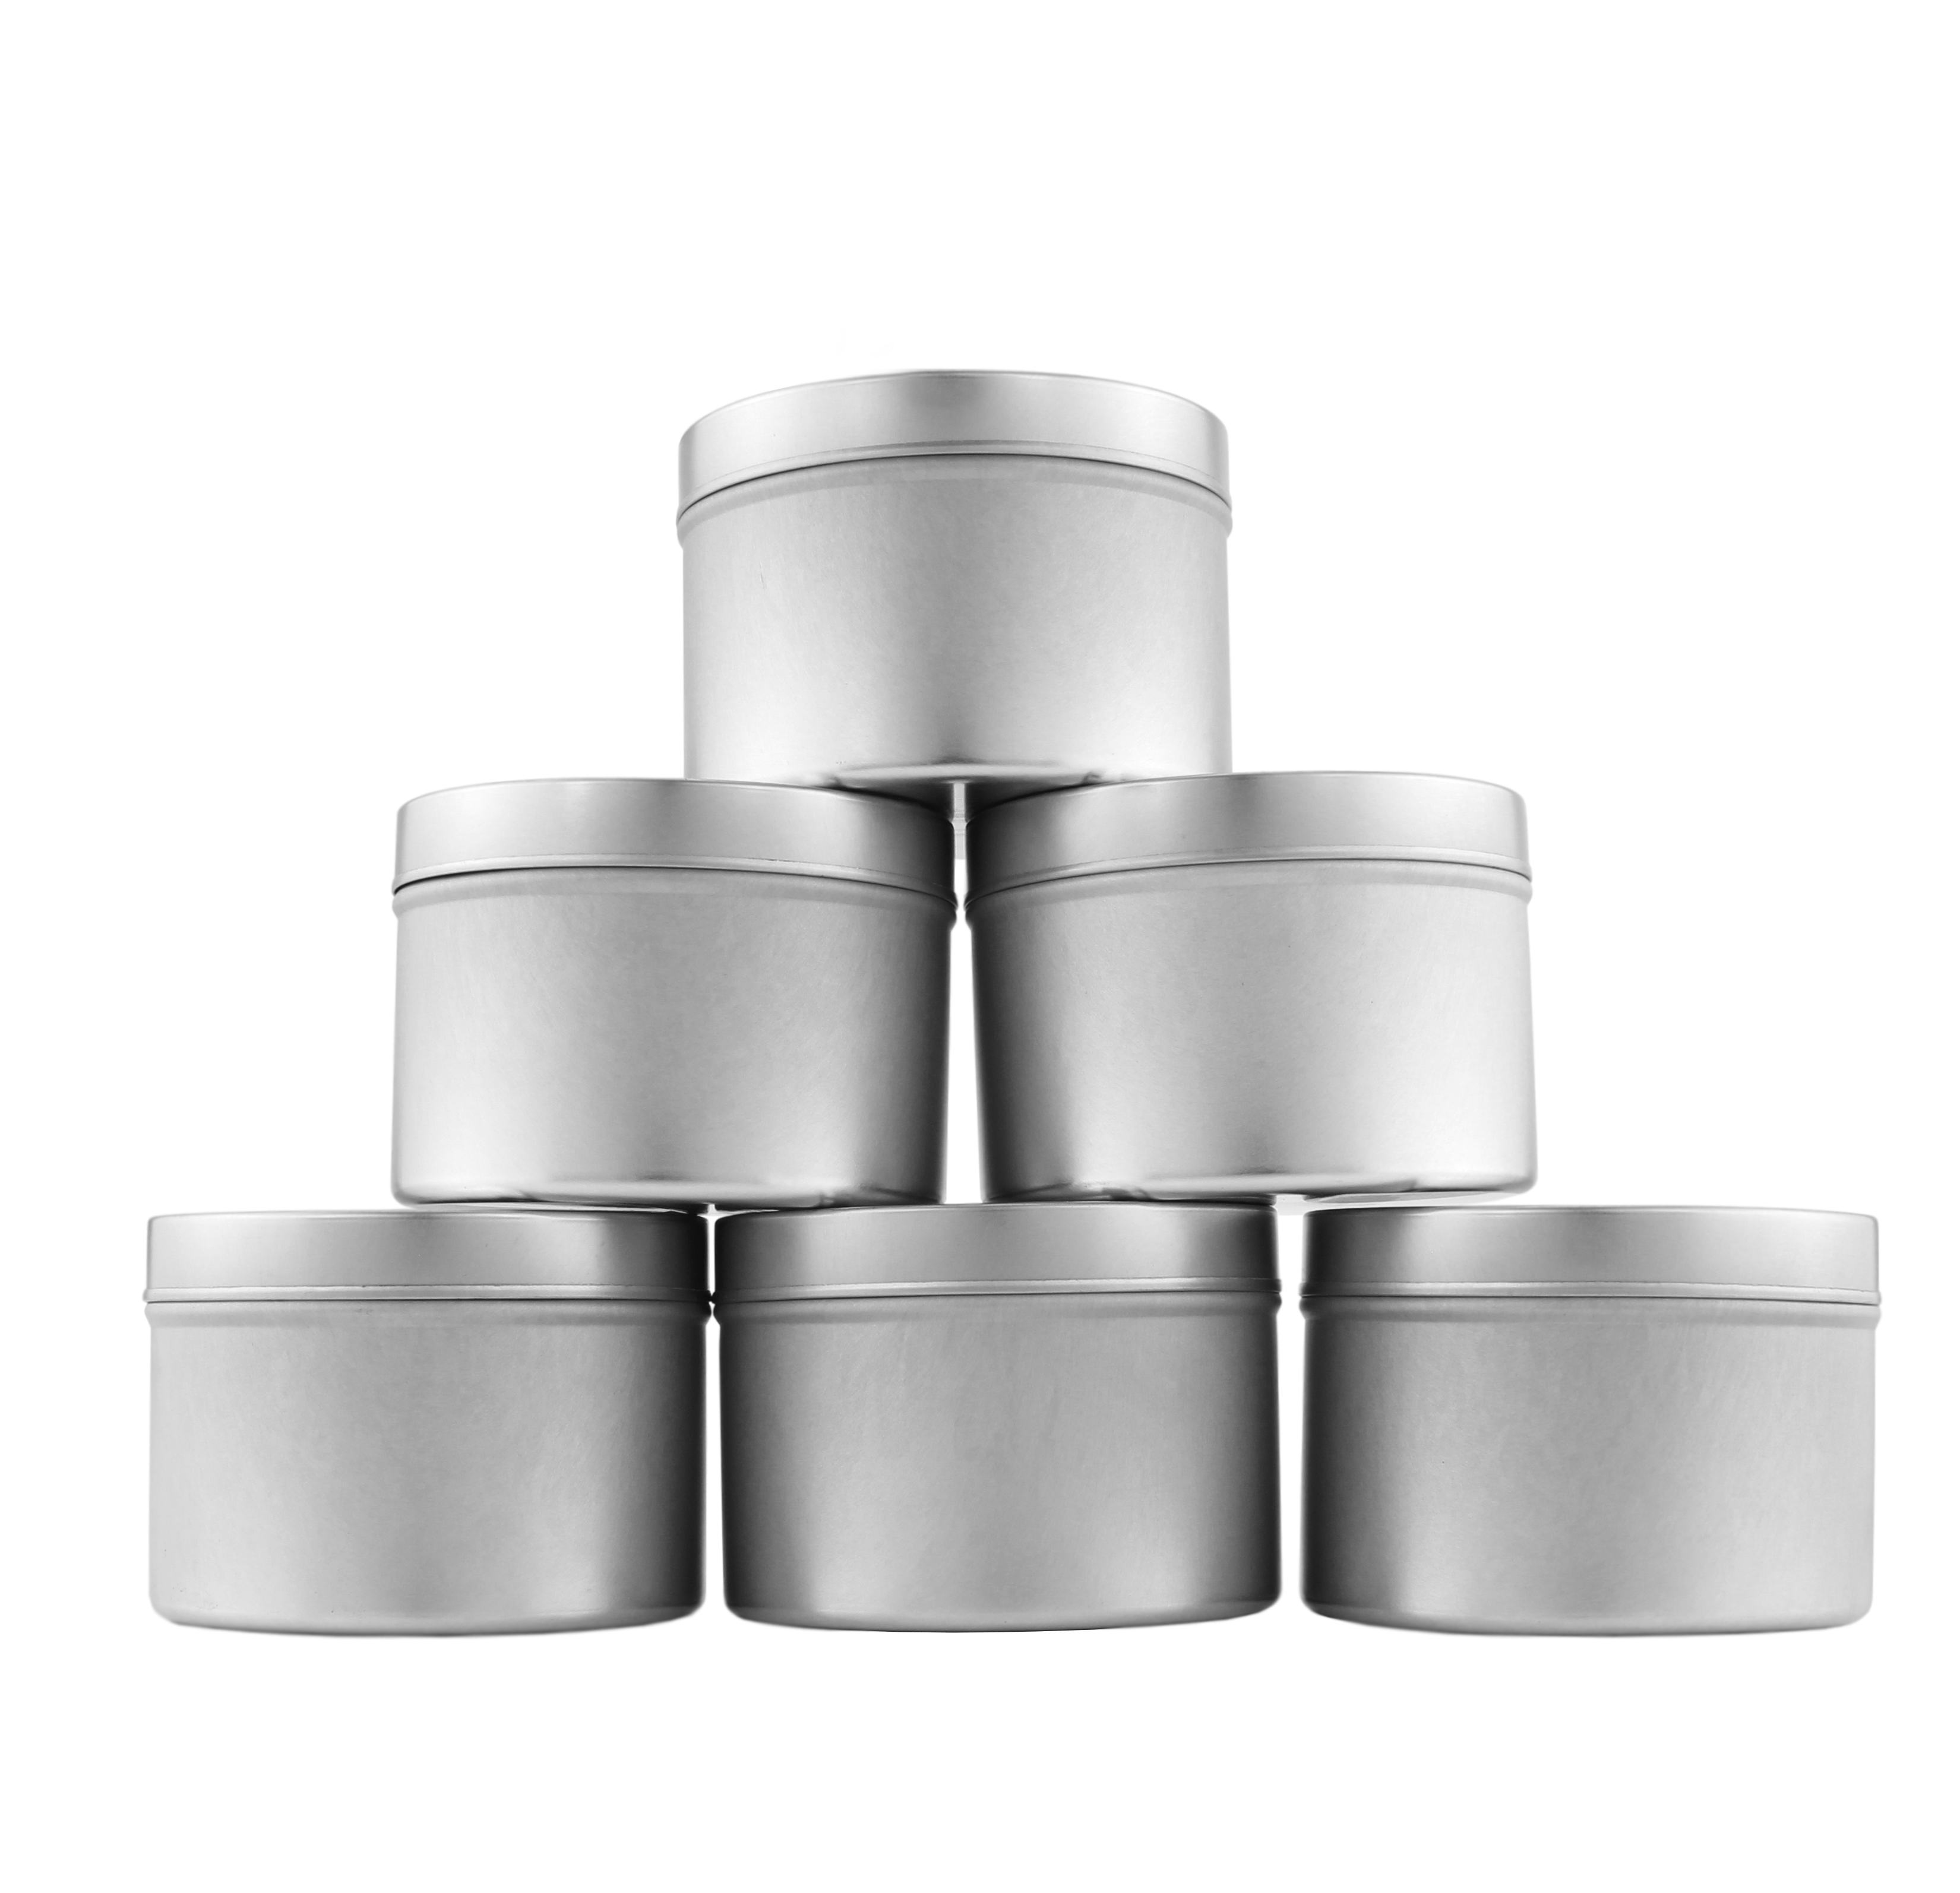 B017ISZ84O - Medium 8oz DIY Candle Tin Jars, Great Survival Candle Tins (6 Pack) 2